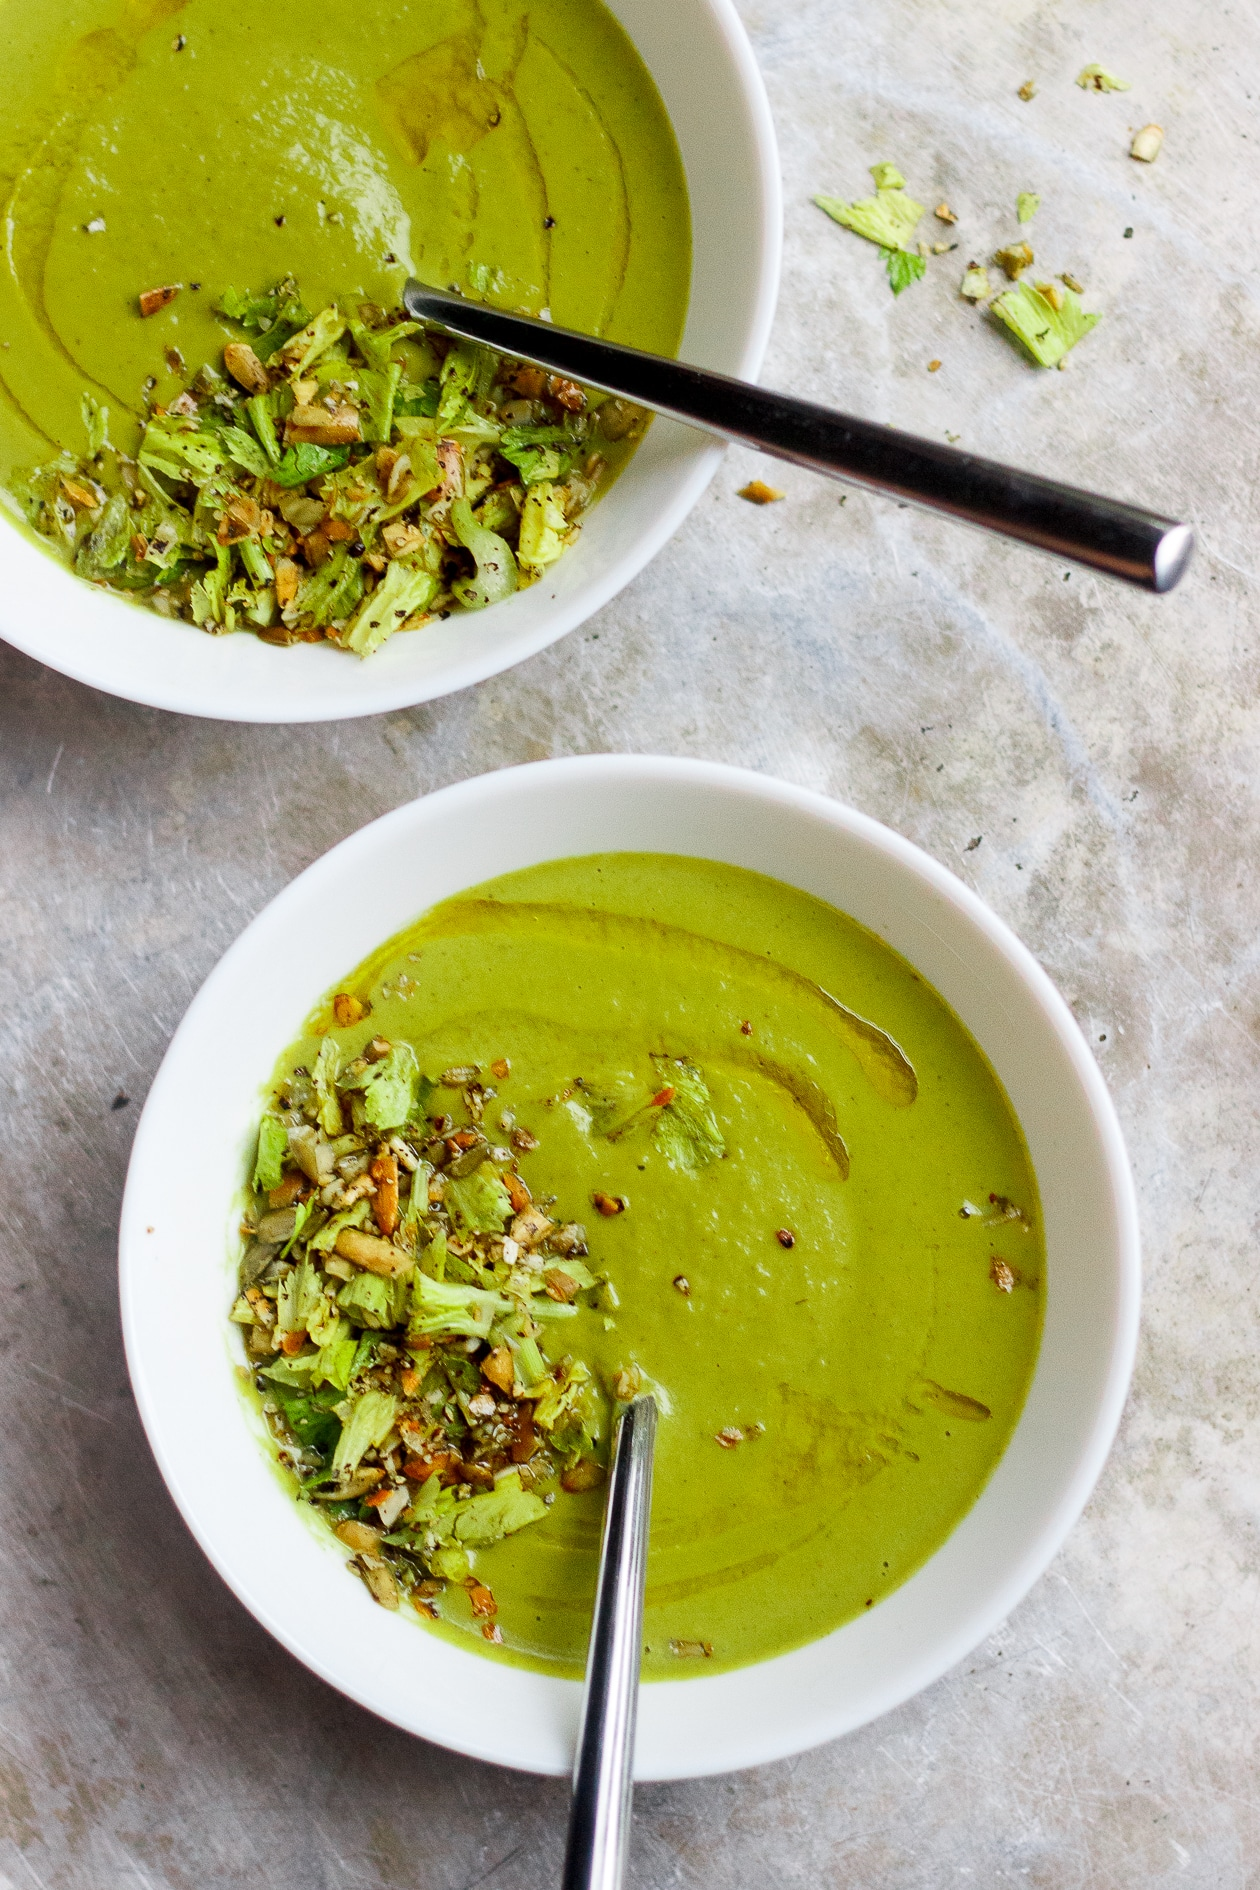 Roasted Broccoli Fennel Soup with Dukkah | Smooth, creamy, vegan and gluten-free roasted broccoli fennel soup topped with dukkah. A delicious, healthy, broccoli soup alternative.